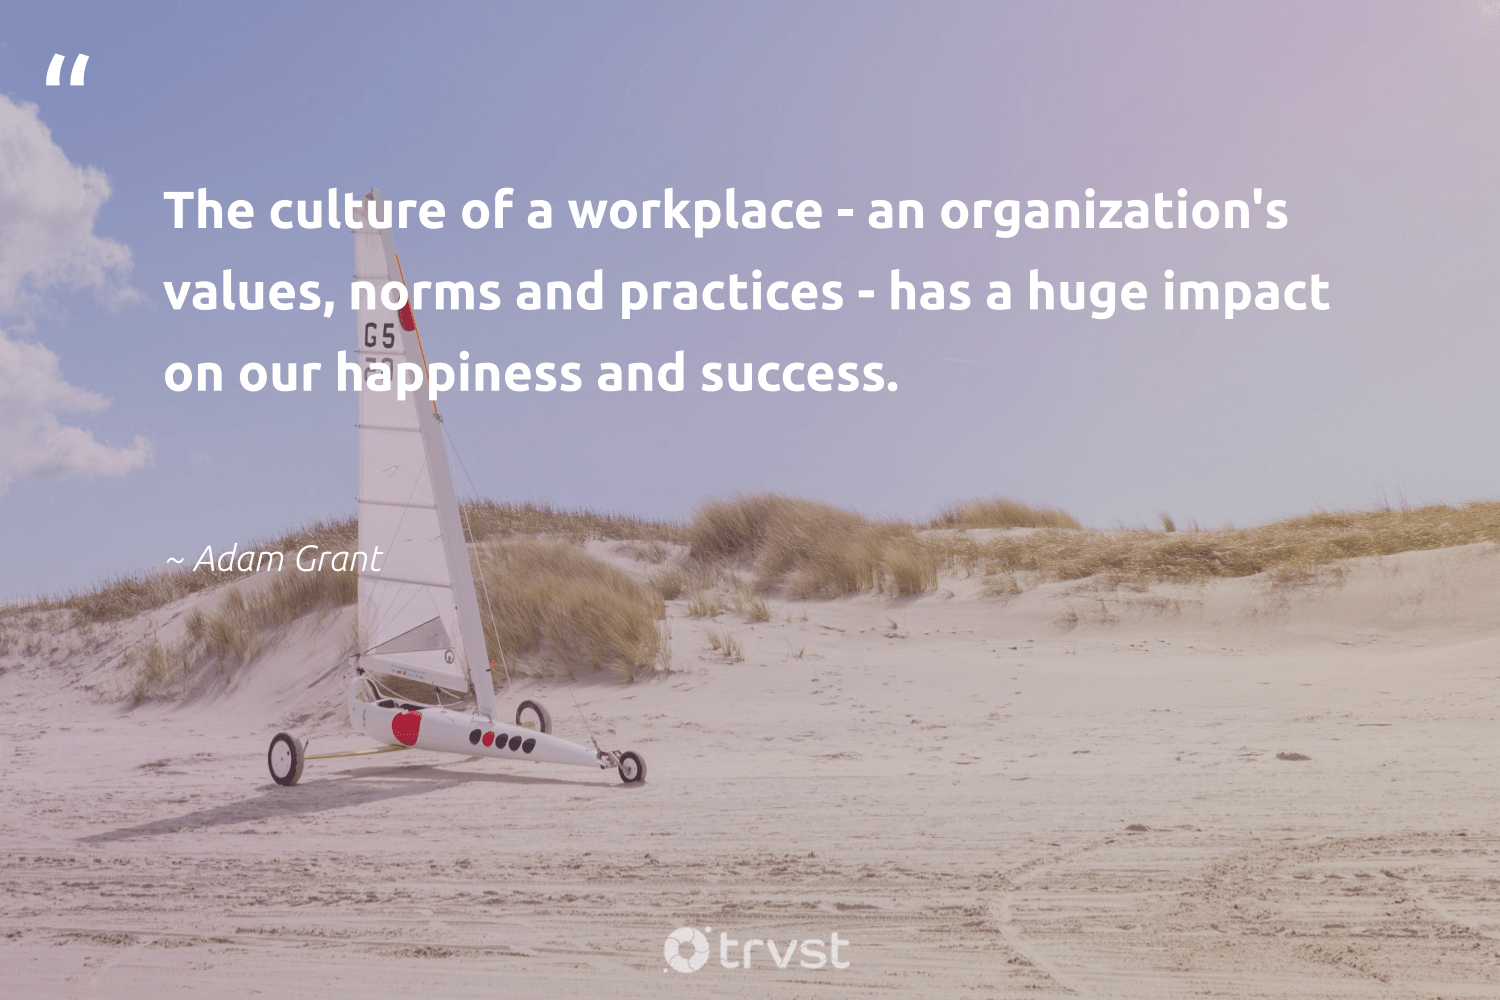 """The culture of a workplace - an organization's values, norms and practices - has a huge impact on our happiness and success.""  - Adam Grant #trvst #quotes #impact #happiness #success #motivational #dogood #softskills #collectiveaction #productivity #makeadifference #begreat"